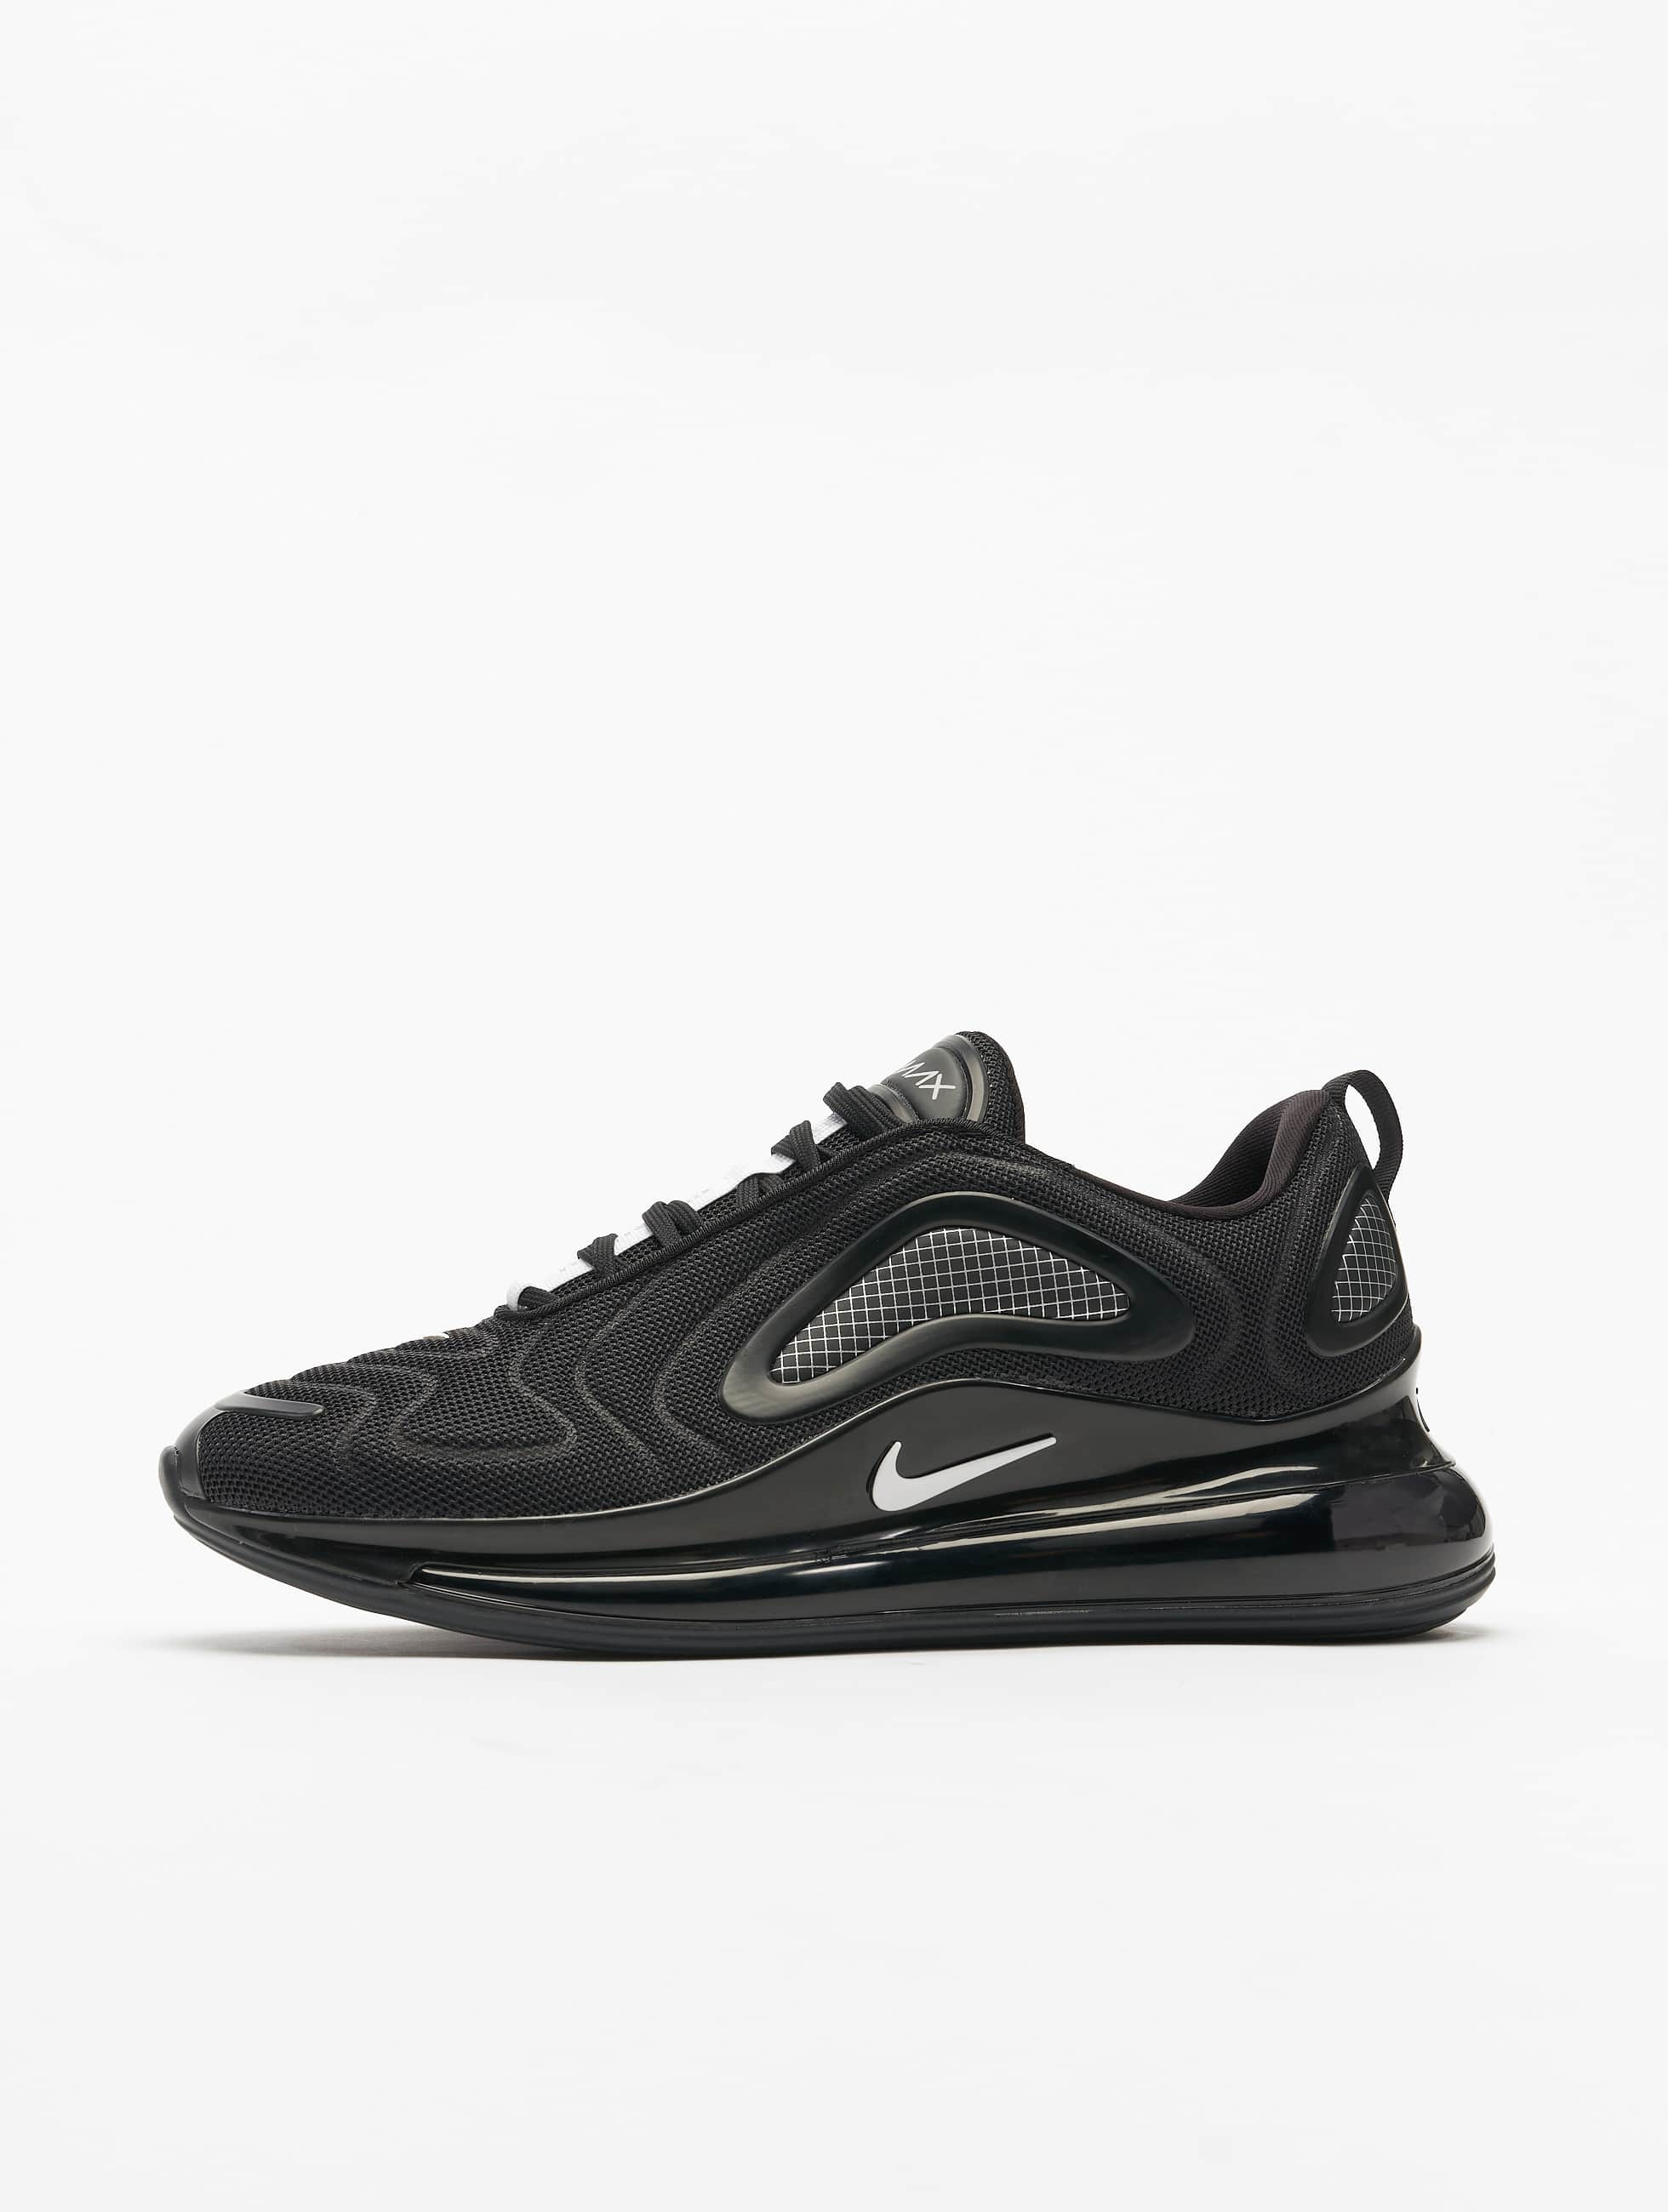 Nike Air Max 720 Sneakers BlackWhite